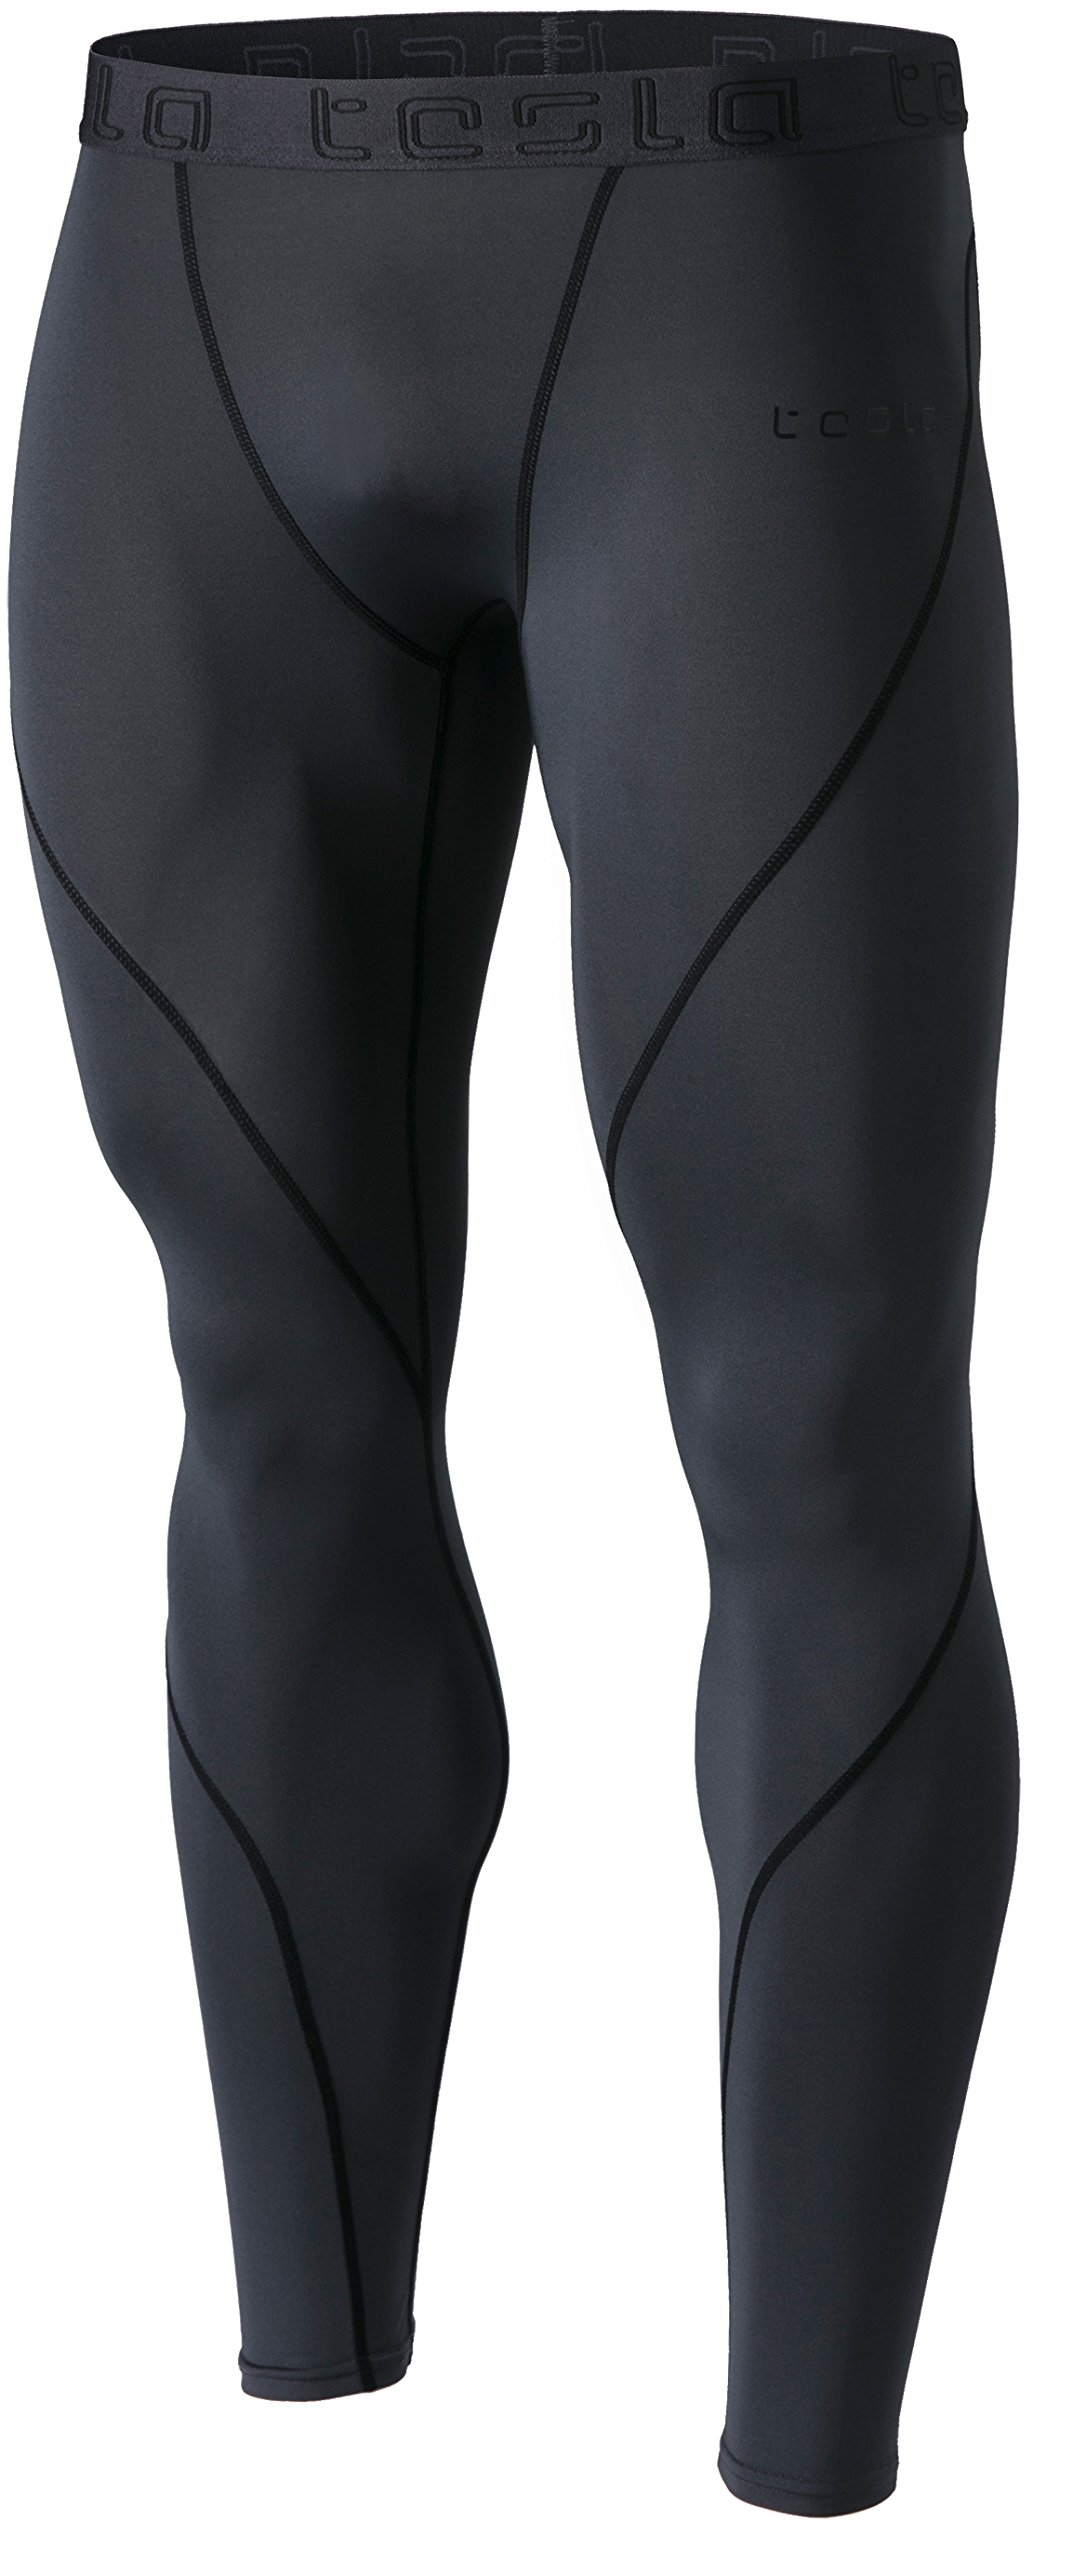 TSLA Men's Compression Pants Running Baselayer Cool